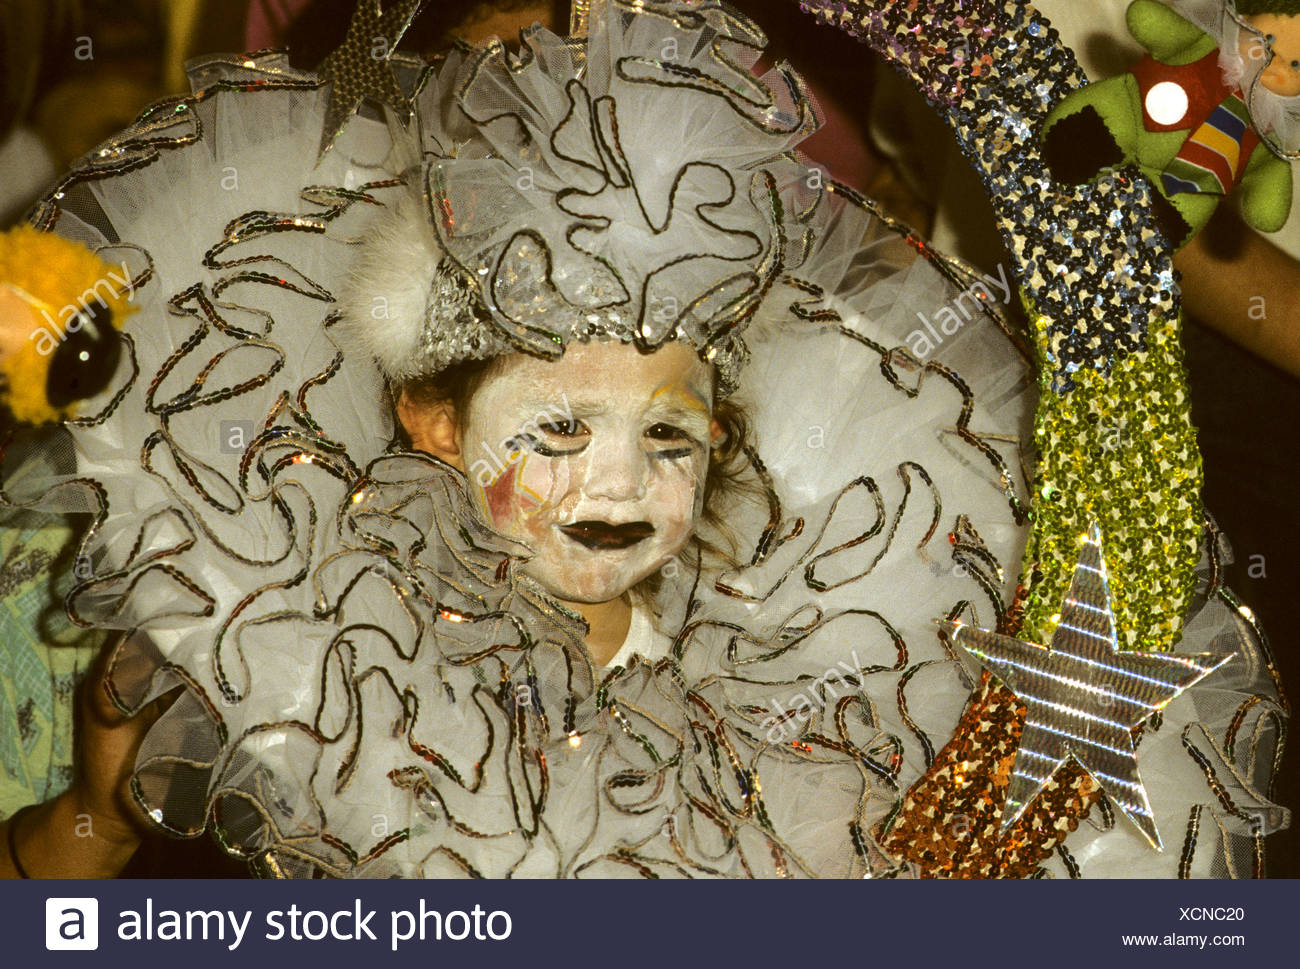 Child queen, crying with make-up smeared by tears during Carnival in Santa Cruz on Tenerife Island, Canary Islands, Spain - Stock Image